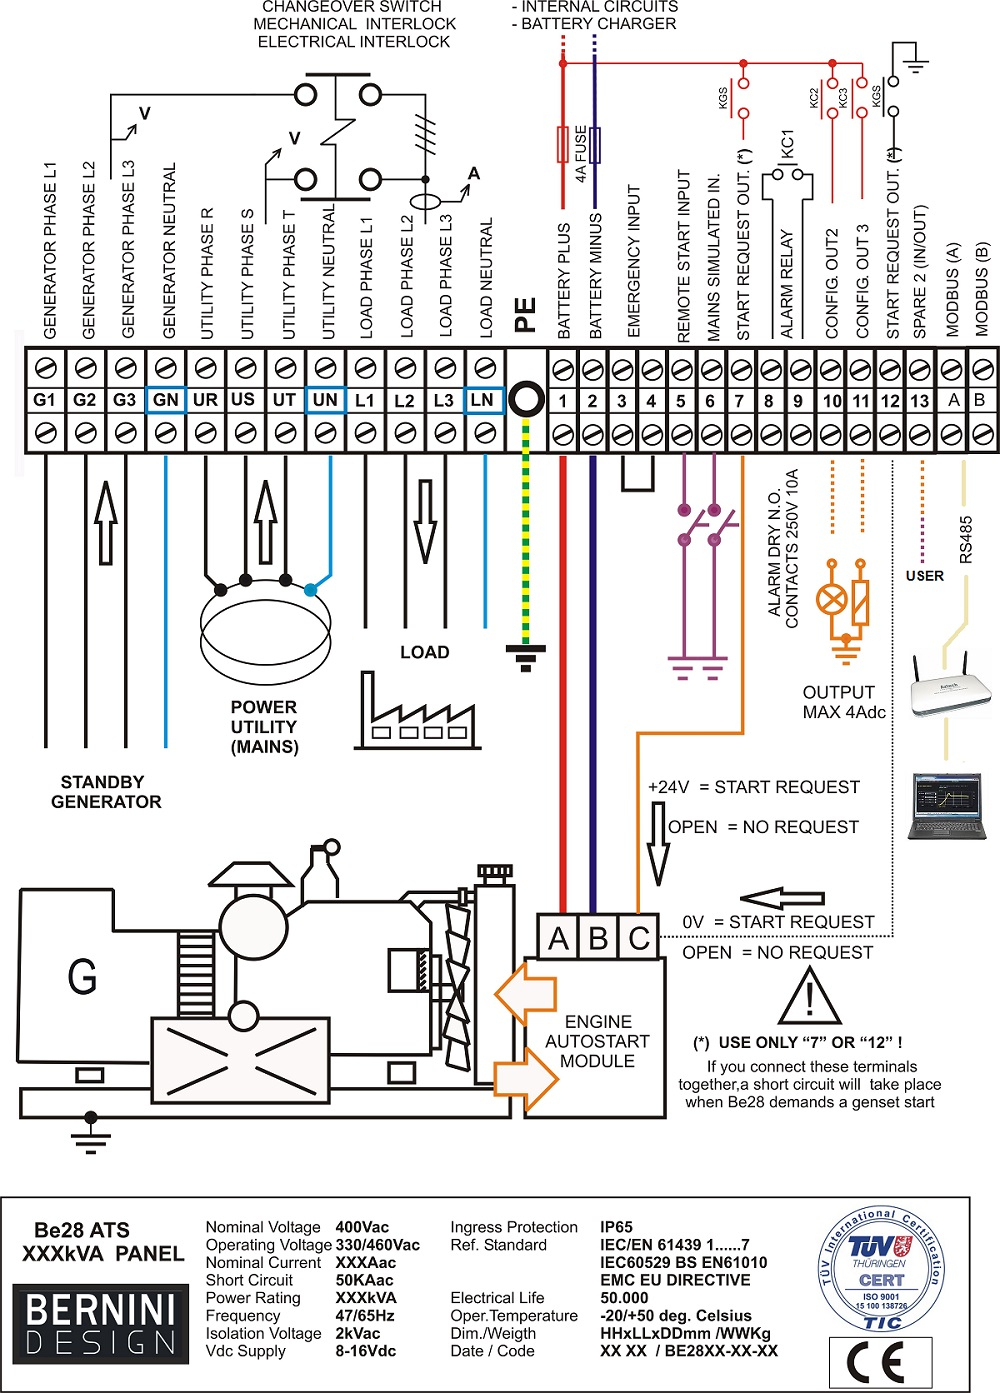 Wiring Diagram For Auto Transfer Switch - Wiring Diagrams Lose - Transfer Switch Wiring Diagram